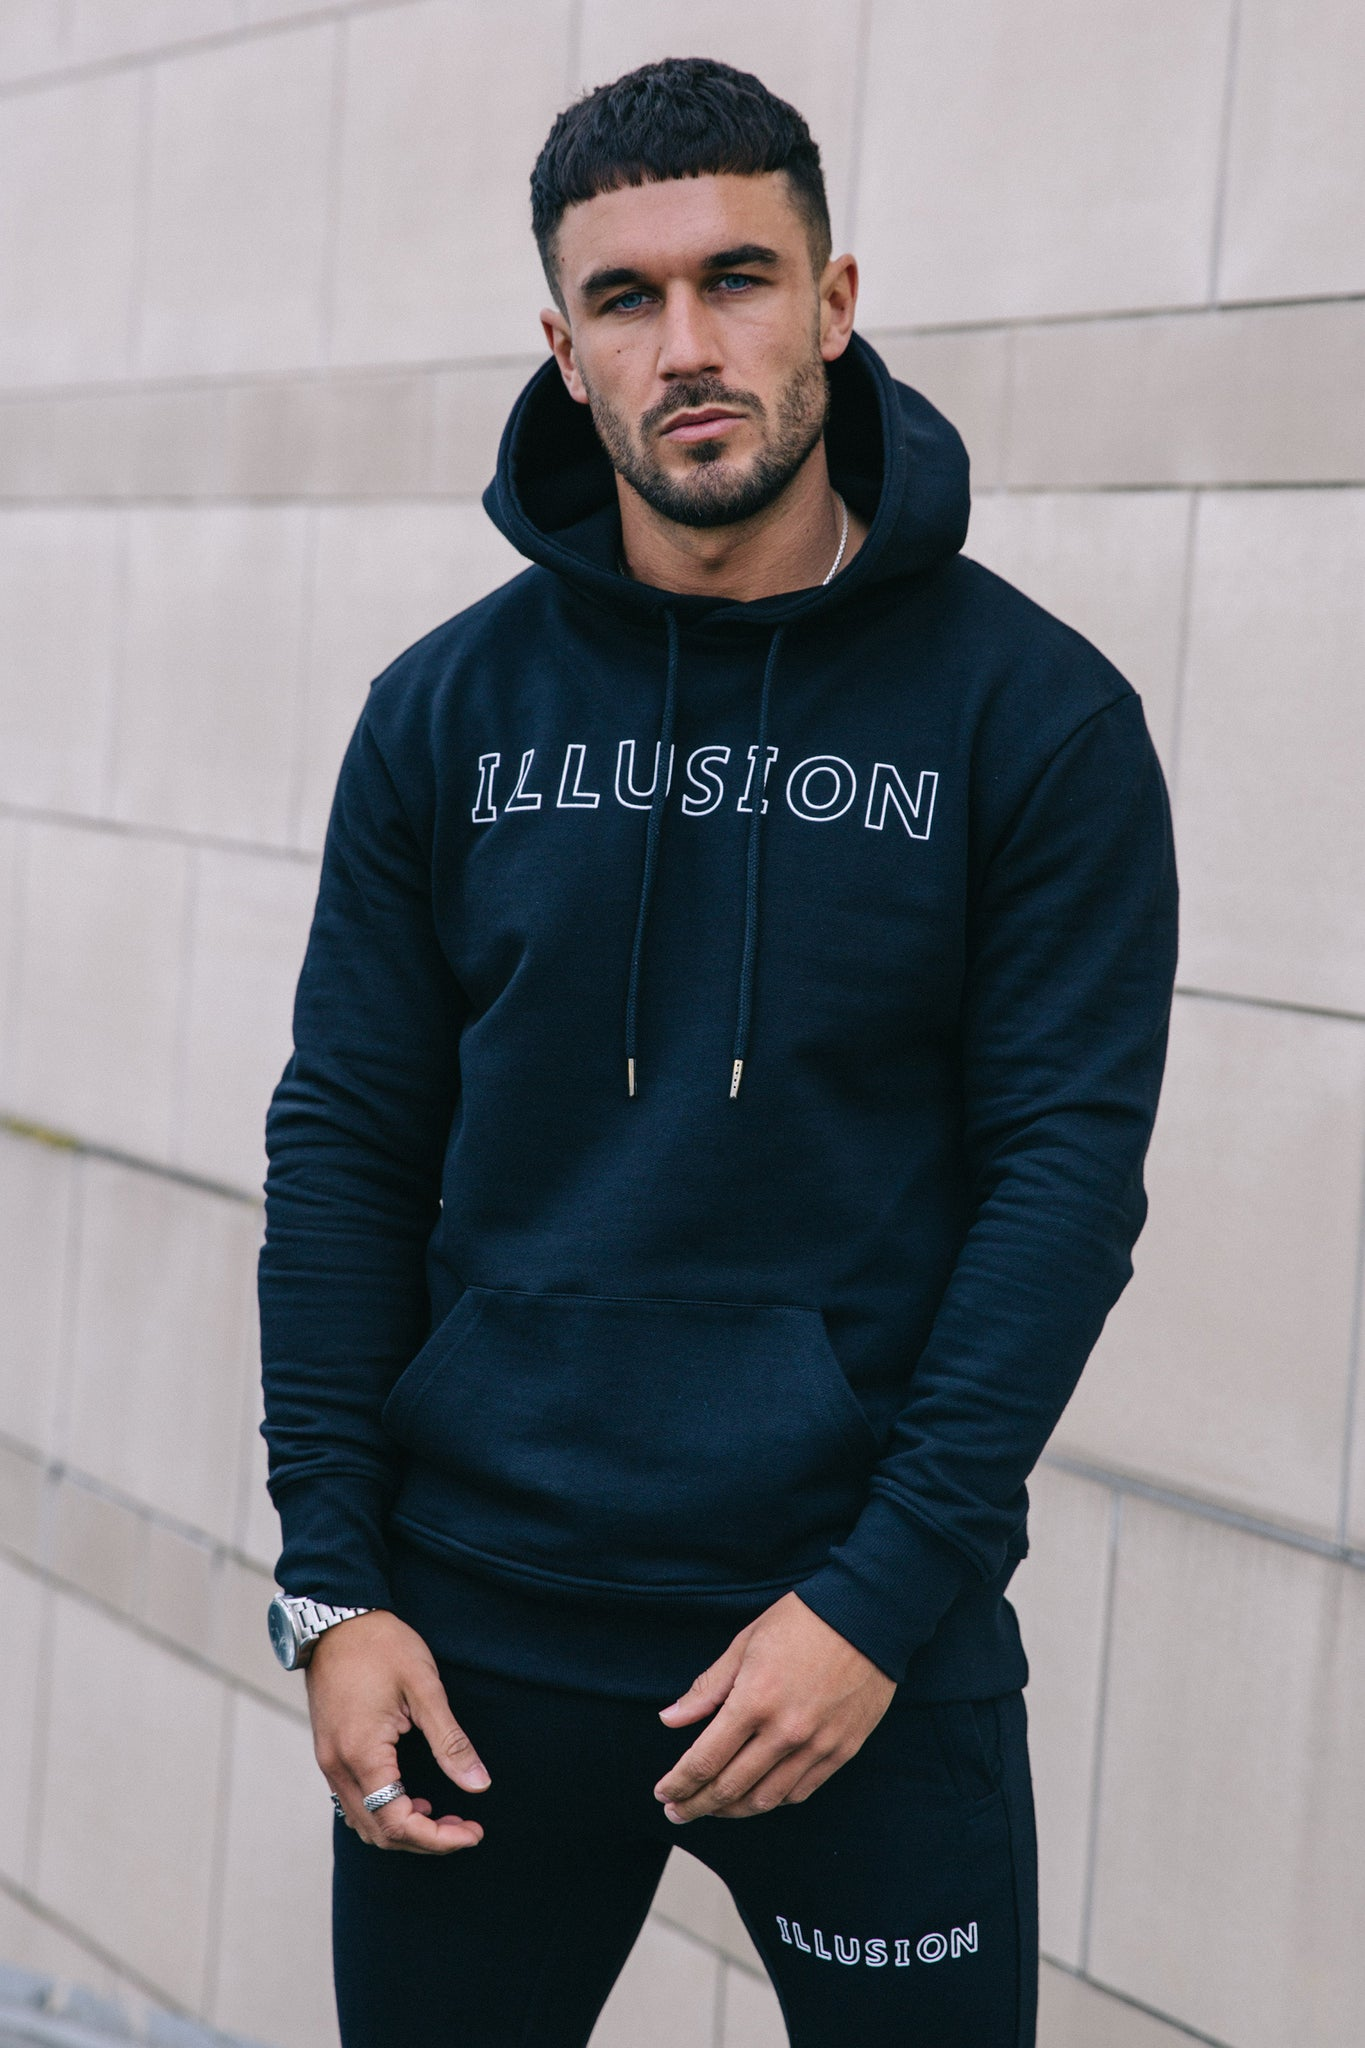 BLACK HOODIE - Illusion Attire